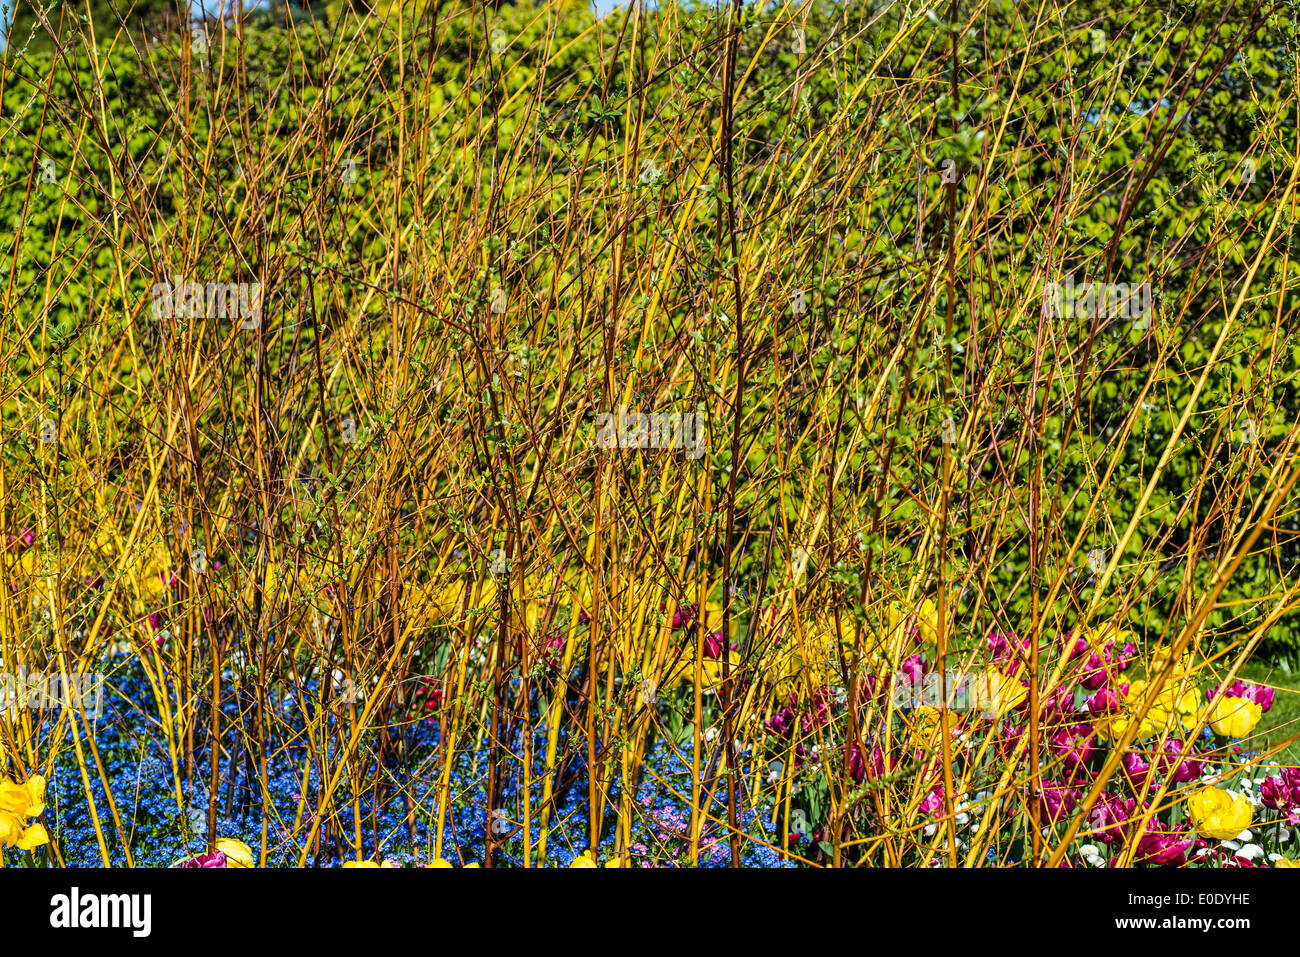 Flaming winter willows - Stock Image